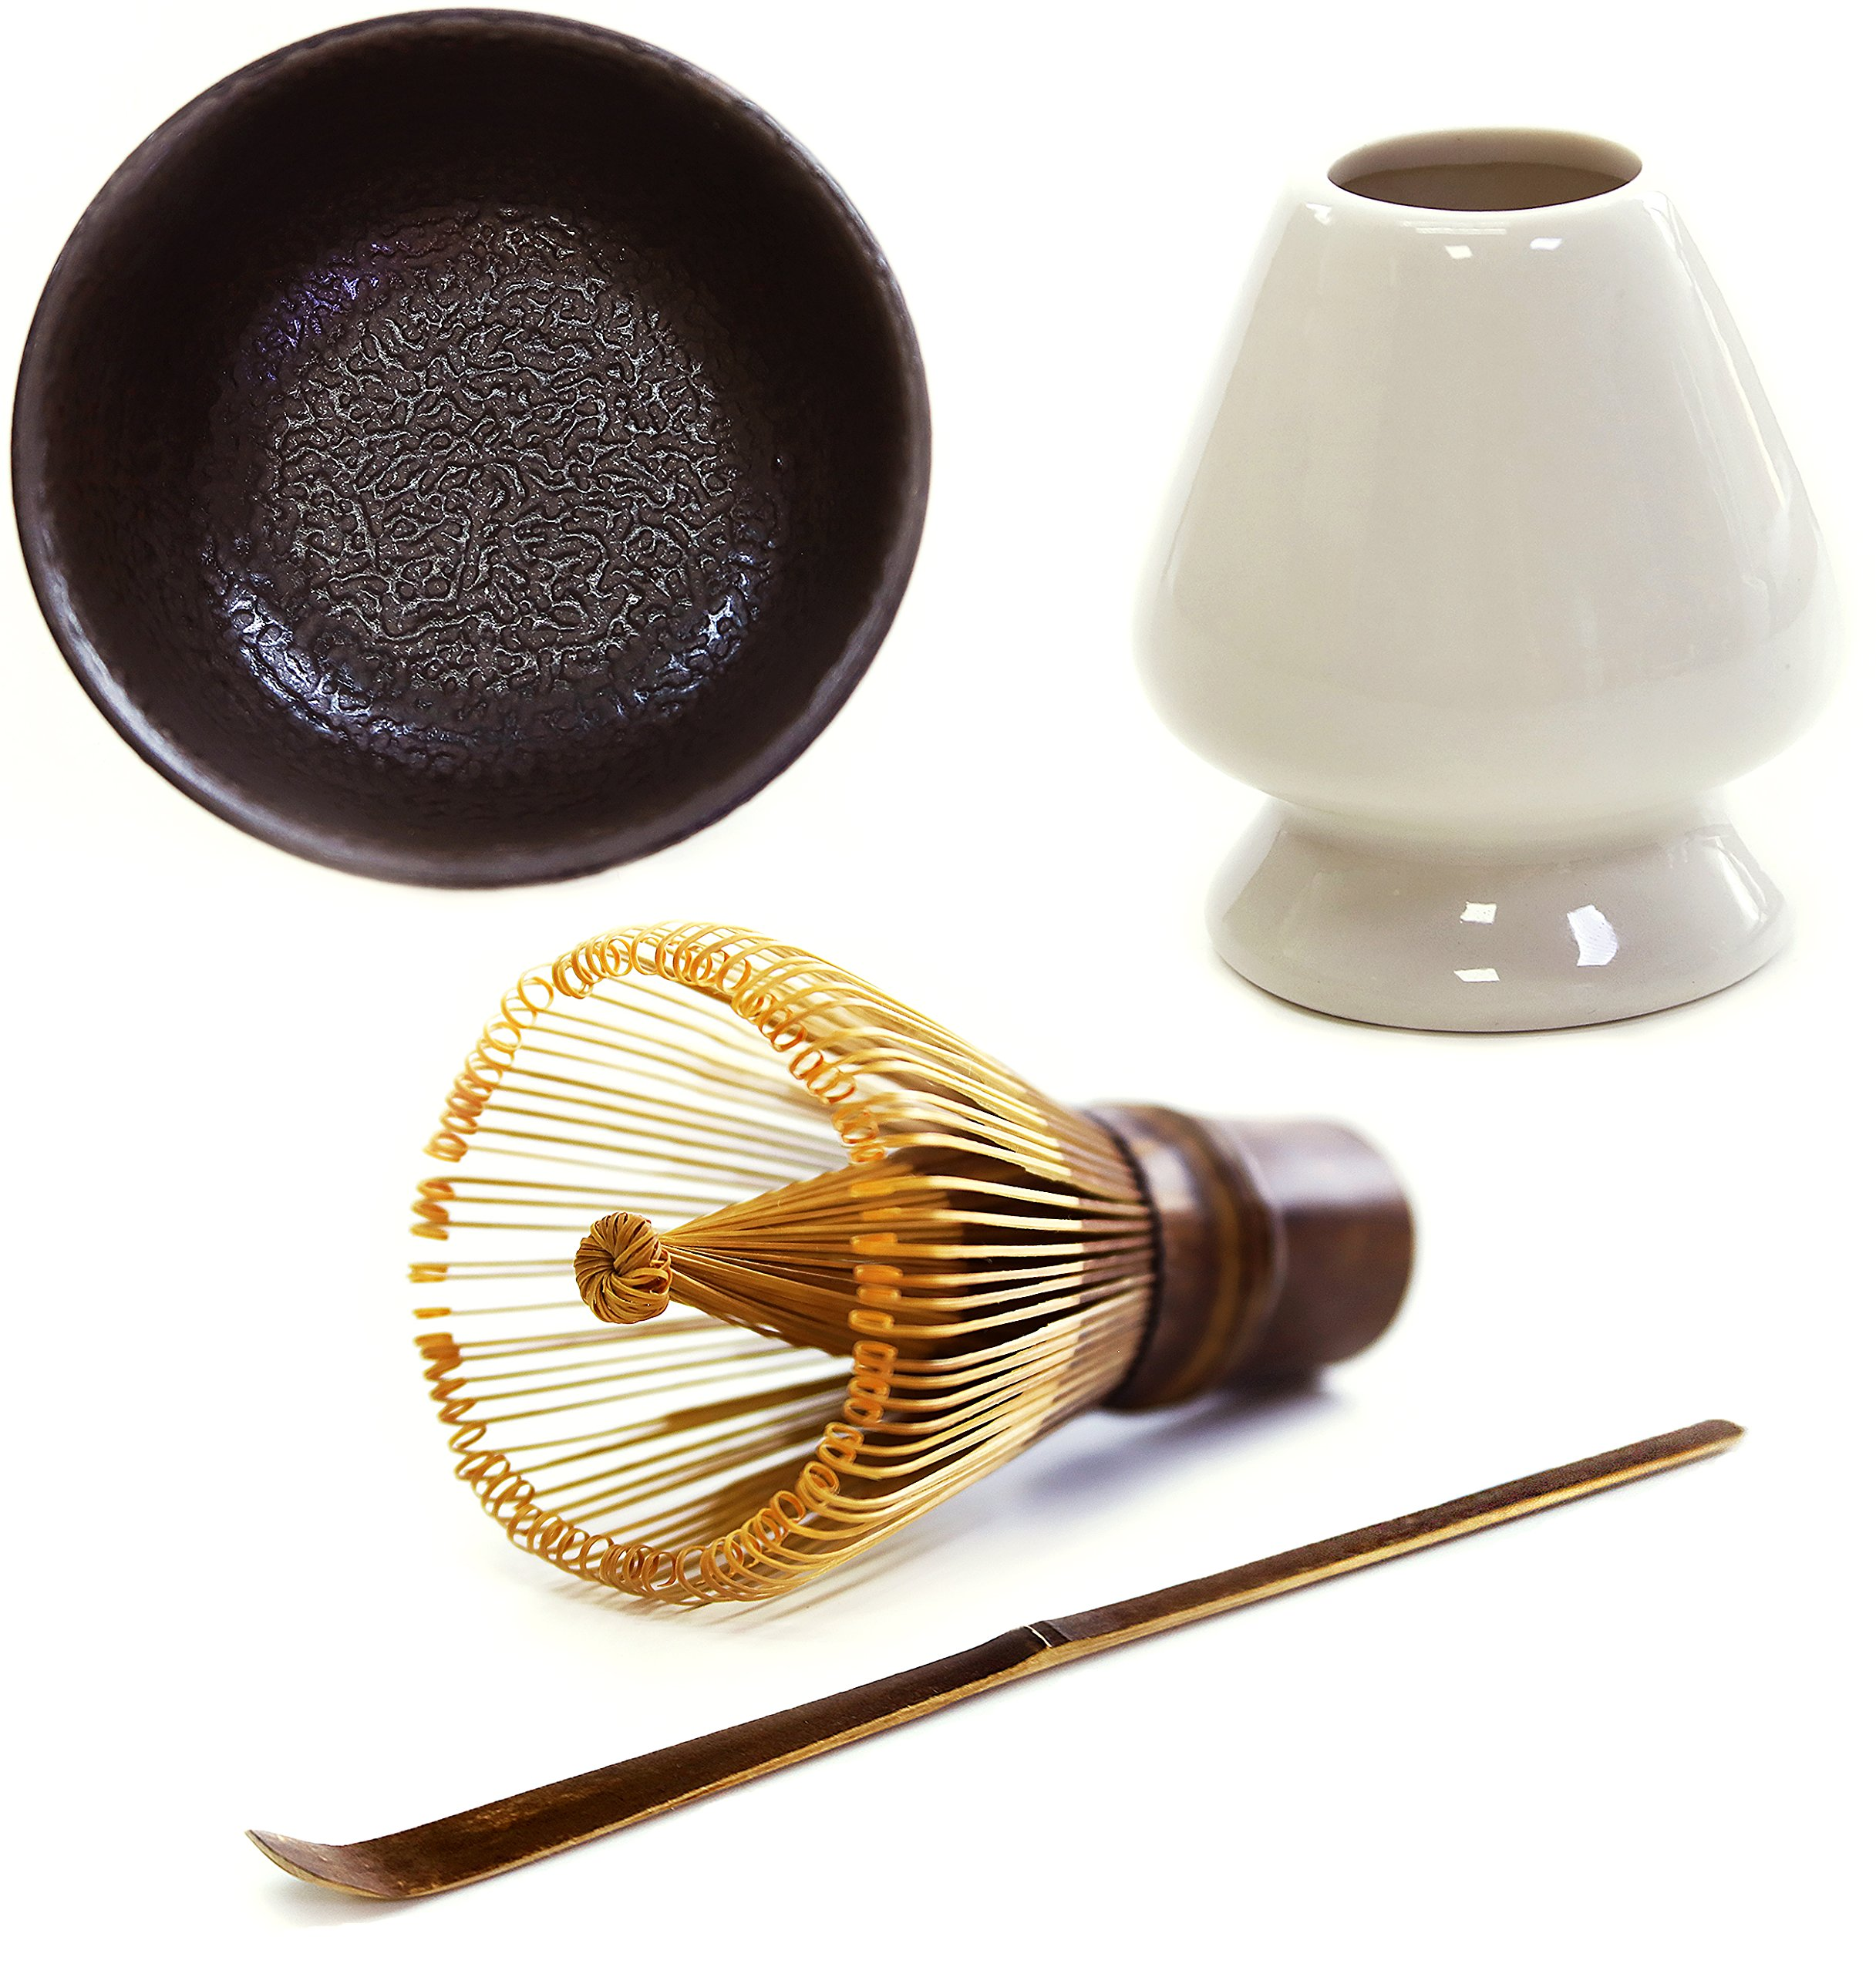 Mocha ChaDao MATCHA Traditional Tea Set | Purple Bamboo Whisk and Scoop | Holder | Matcha Bowl | Gift Box | Best Authentic Accessories For Japanese Matcha Green Tea Ceremony